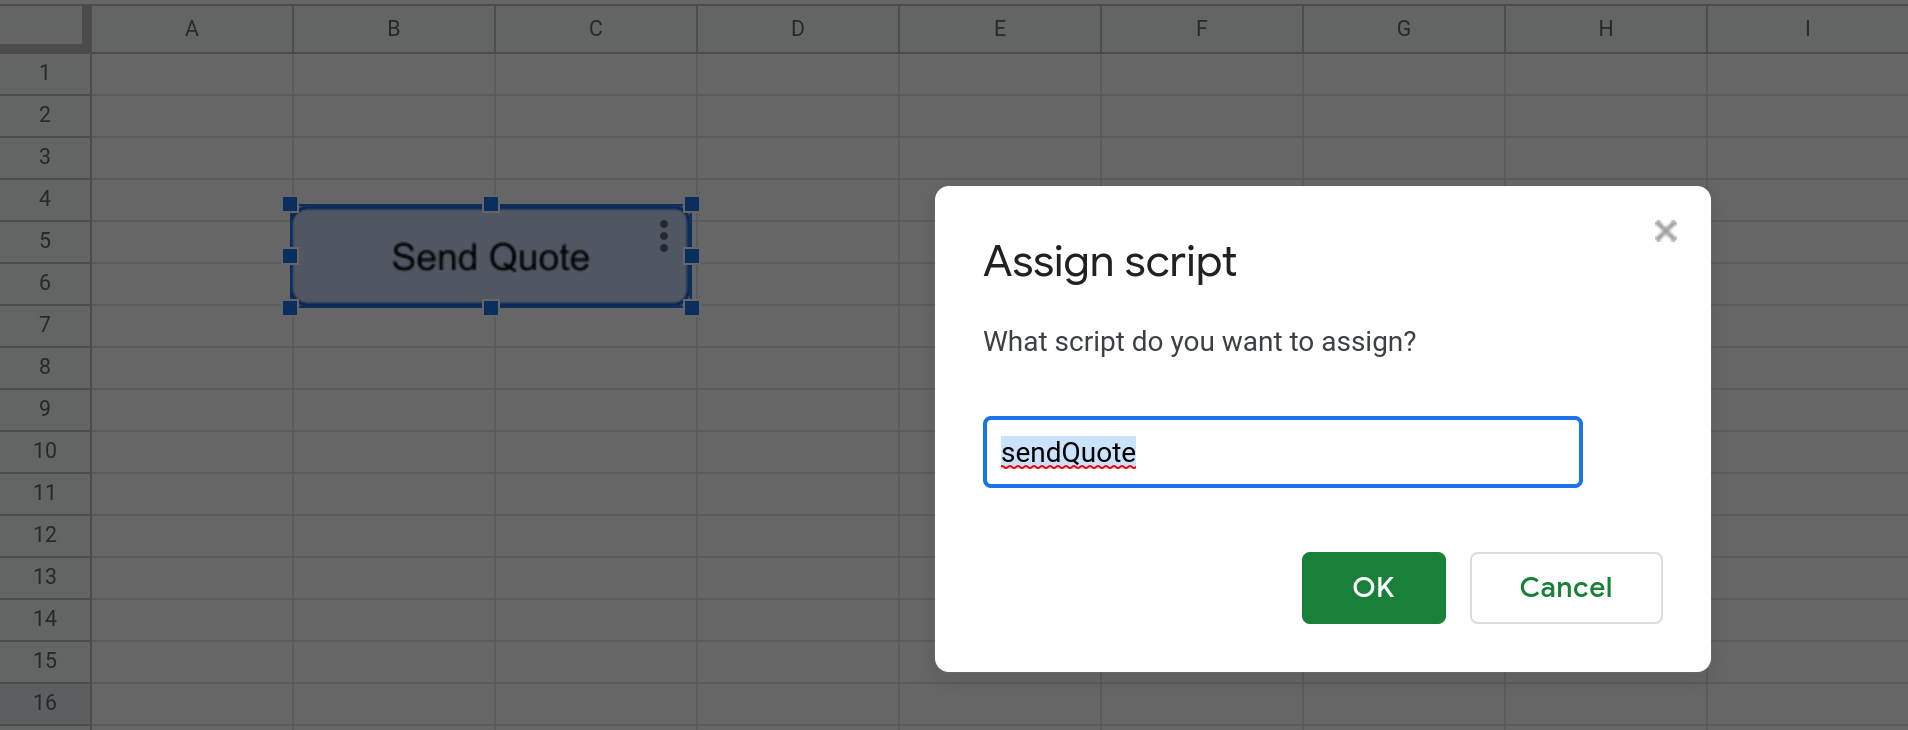 Screenshot of the modal dialog in Google Sheets where you specify the name of the function to be run whenever the button is clicked.